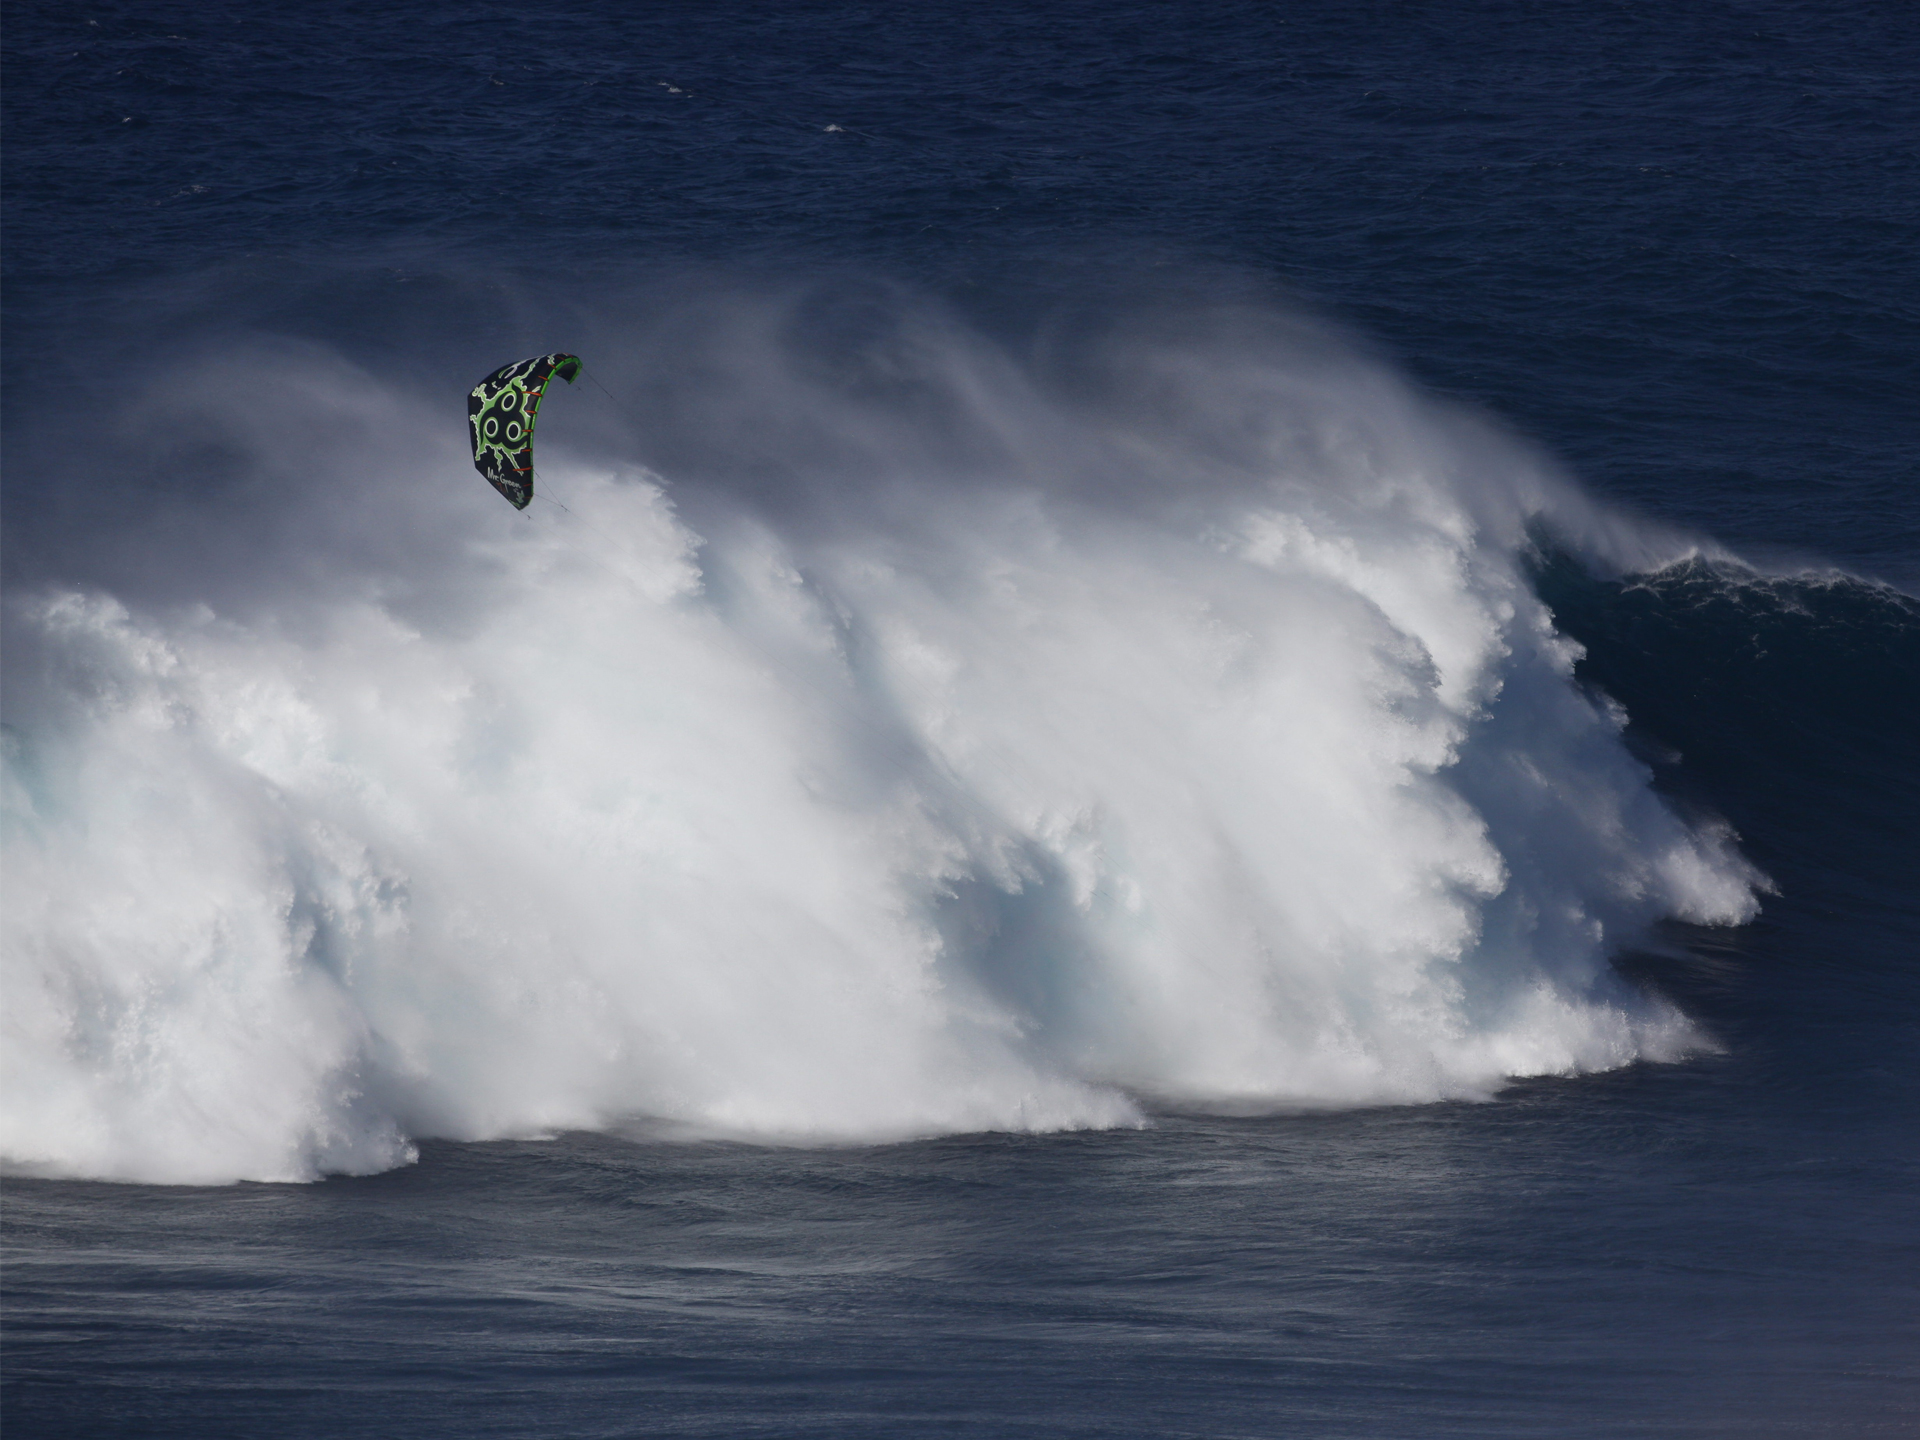 kitesurf wallpaper image - Niccolo Porcella in the grinder on a huge day at Jaws with his Wainman Hawaii Rabbit kite - in resolution: Standard 4:3 1920 X 1440